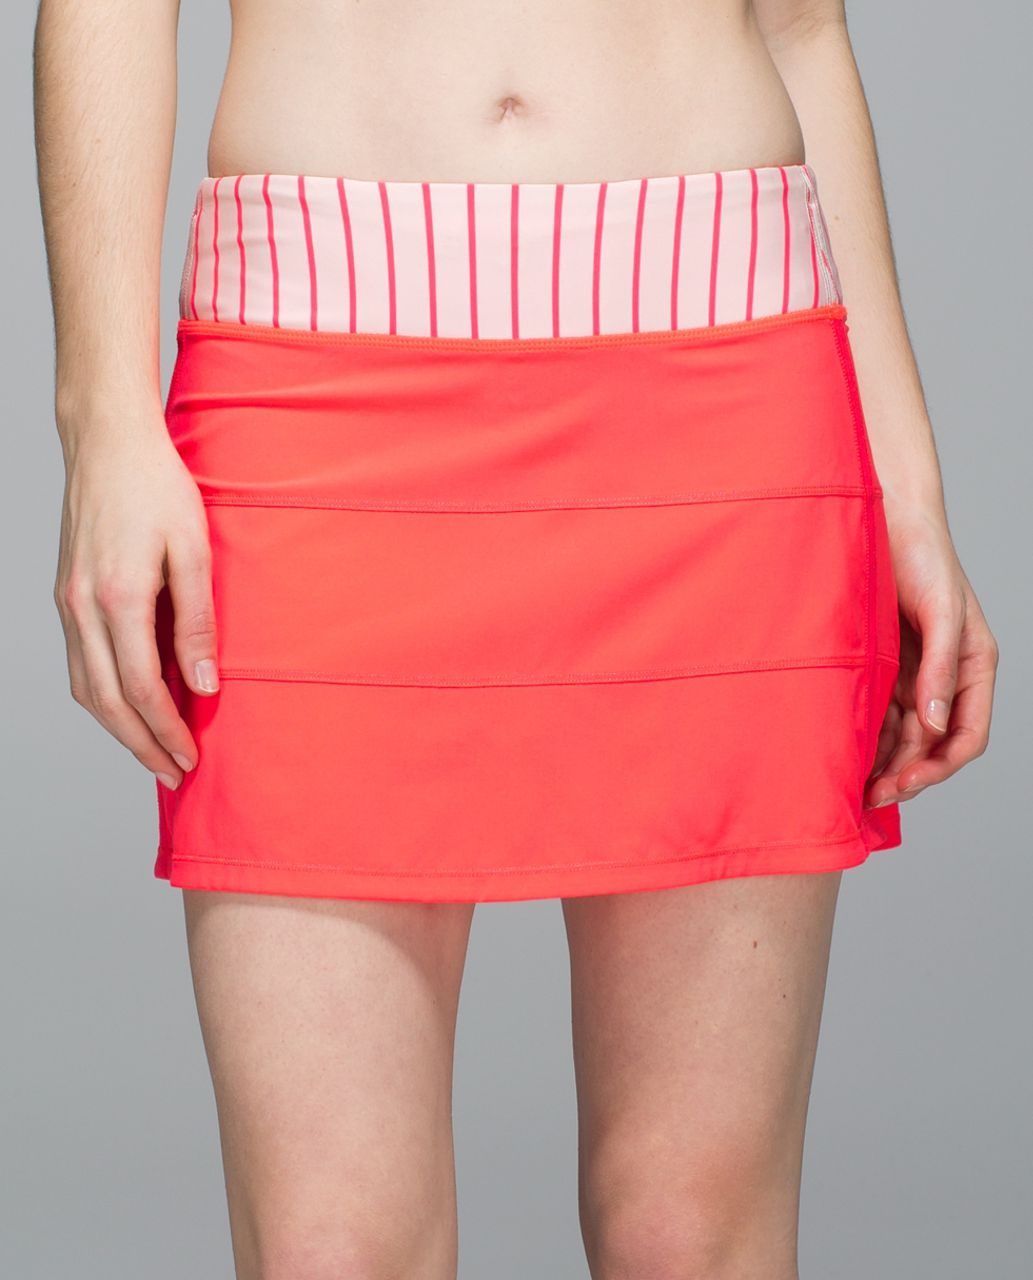 Lululemon Pace Rival Skirt II *4-way Stretch (Tall) - Electric Coral / Quiet Stripe Butter Pink Electric Coral